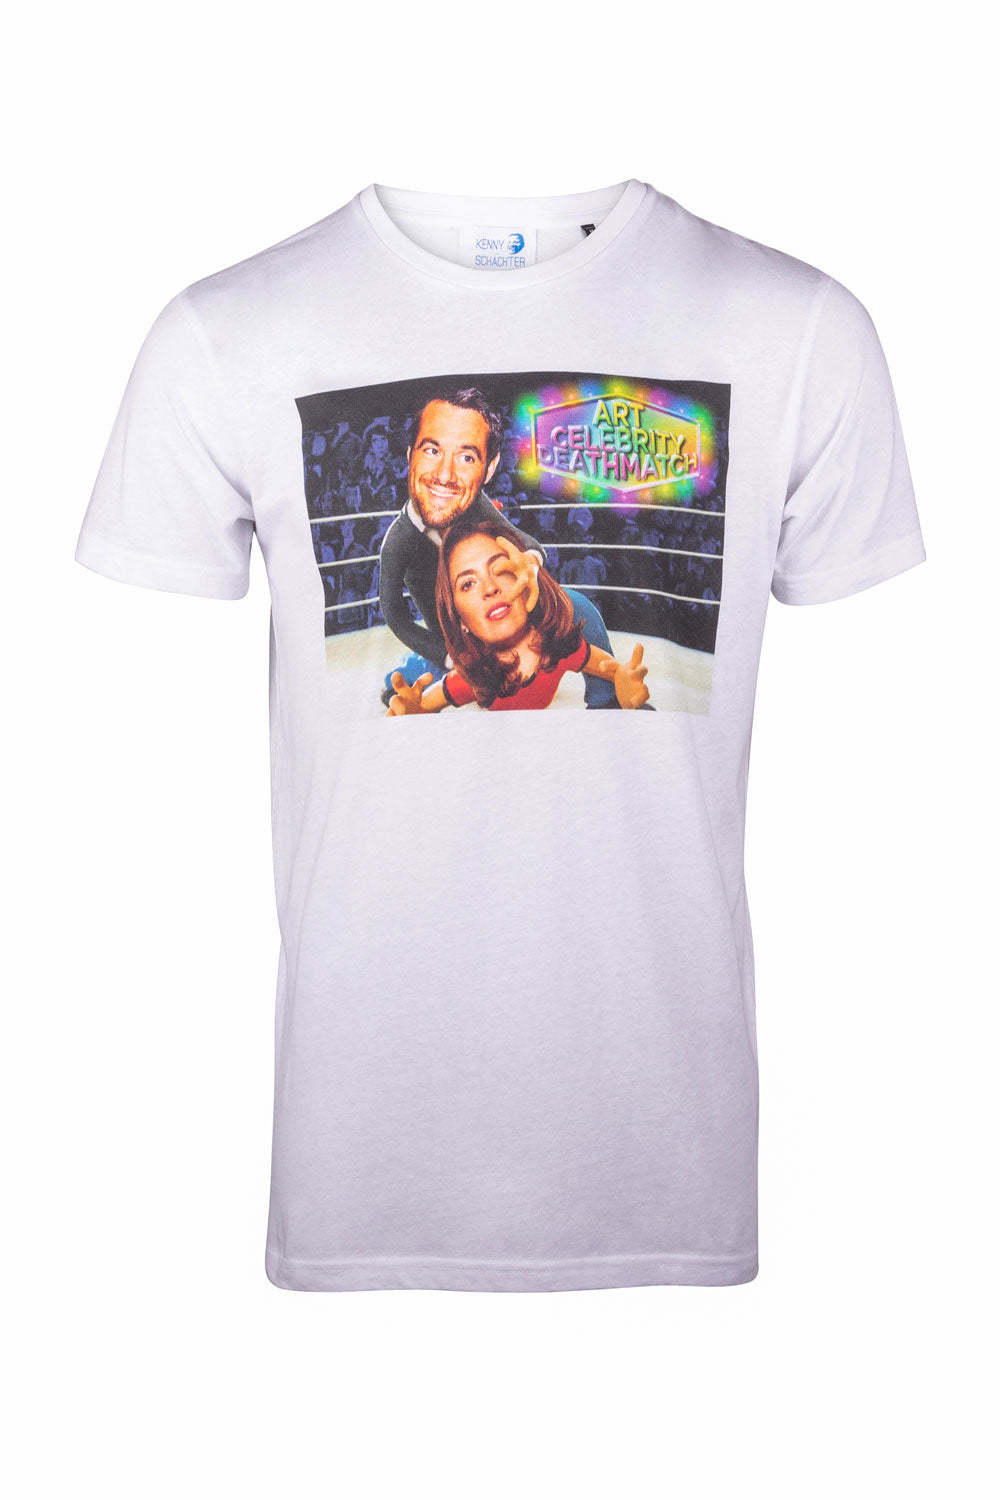 Kenny Schachter 'Celebrity Deathmatch' Graphic T-Shirt